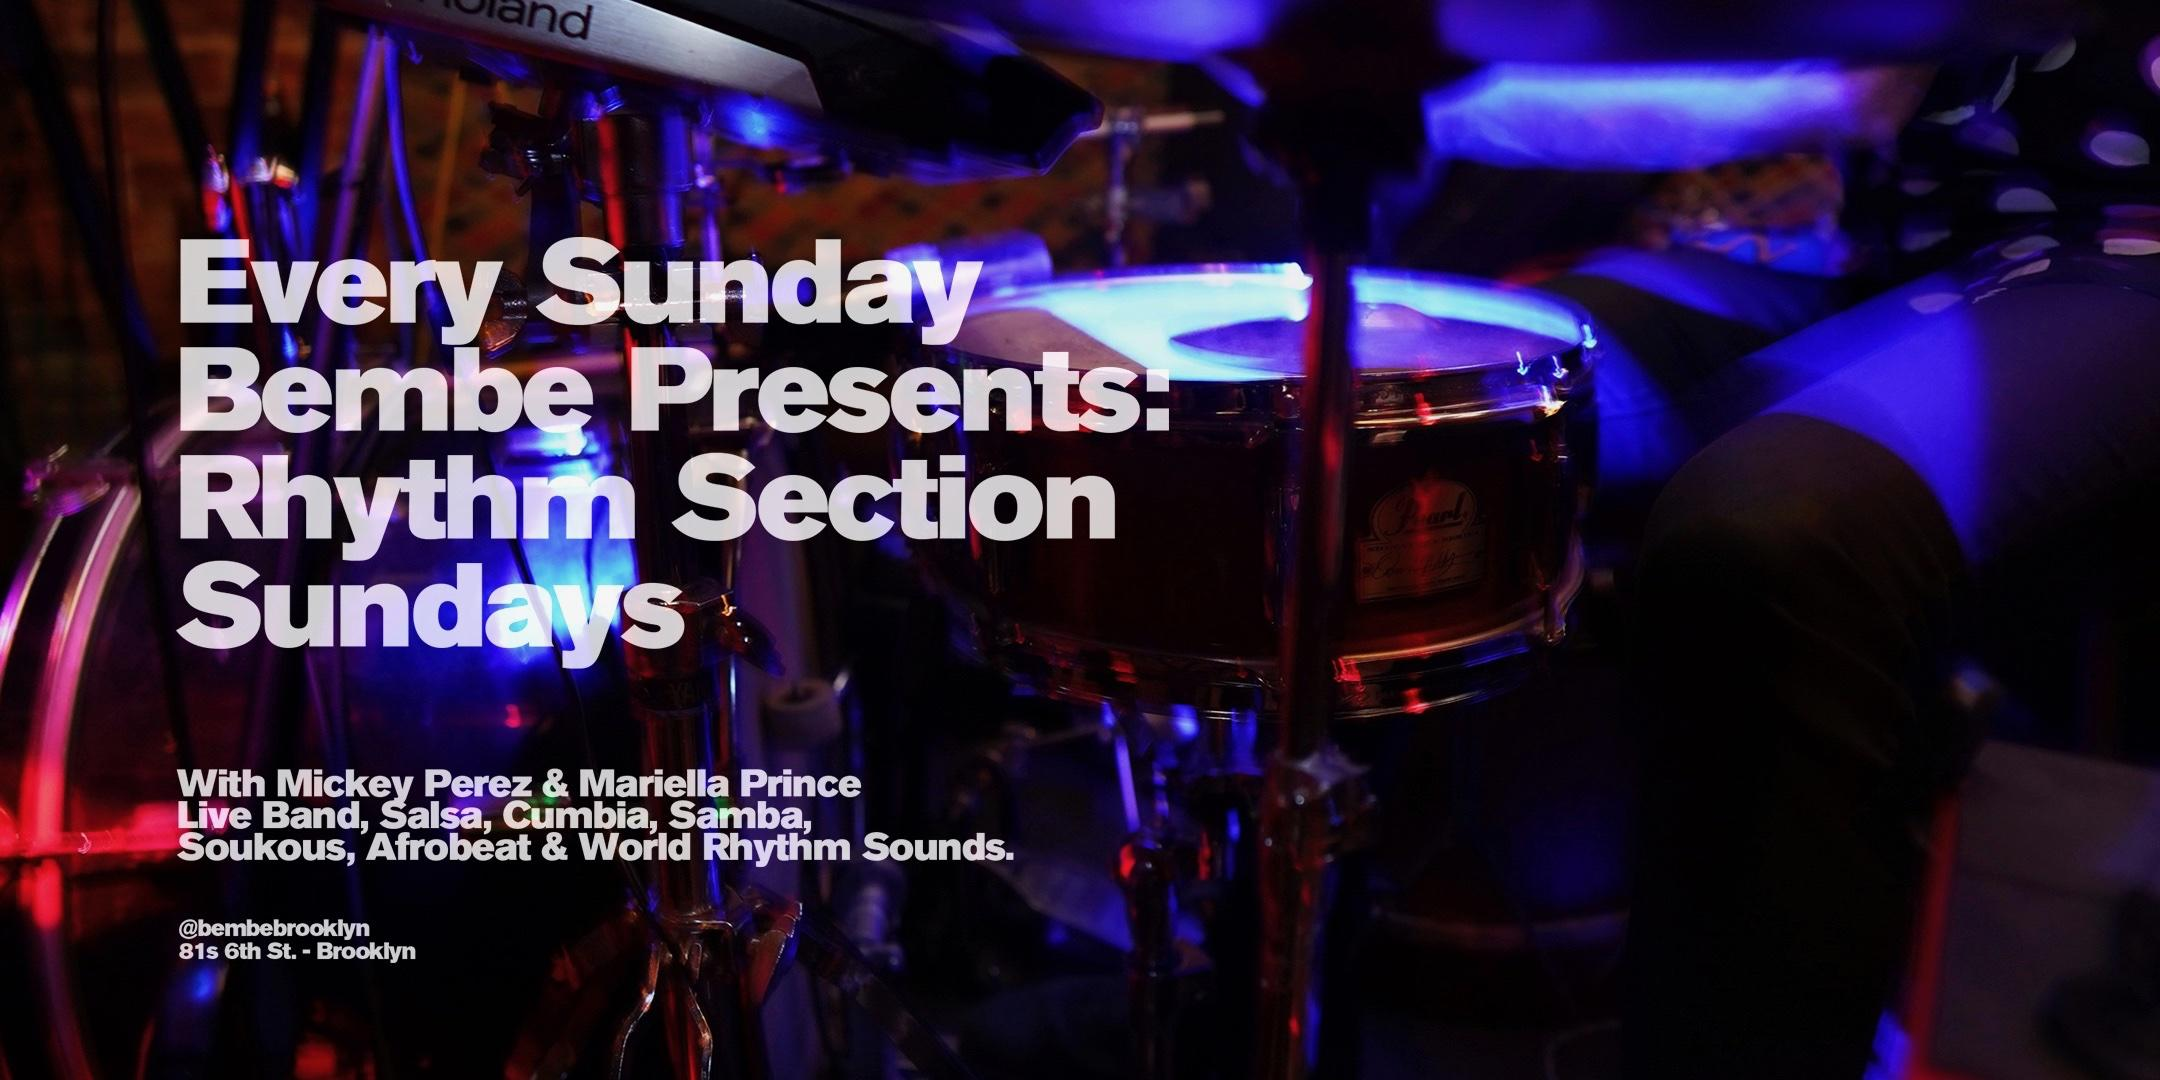 Bembe Presents: Rhythm Section Sunday